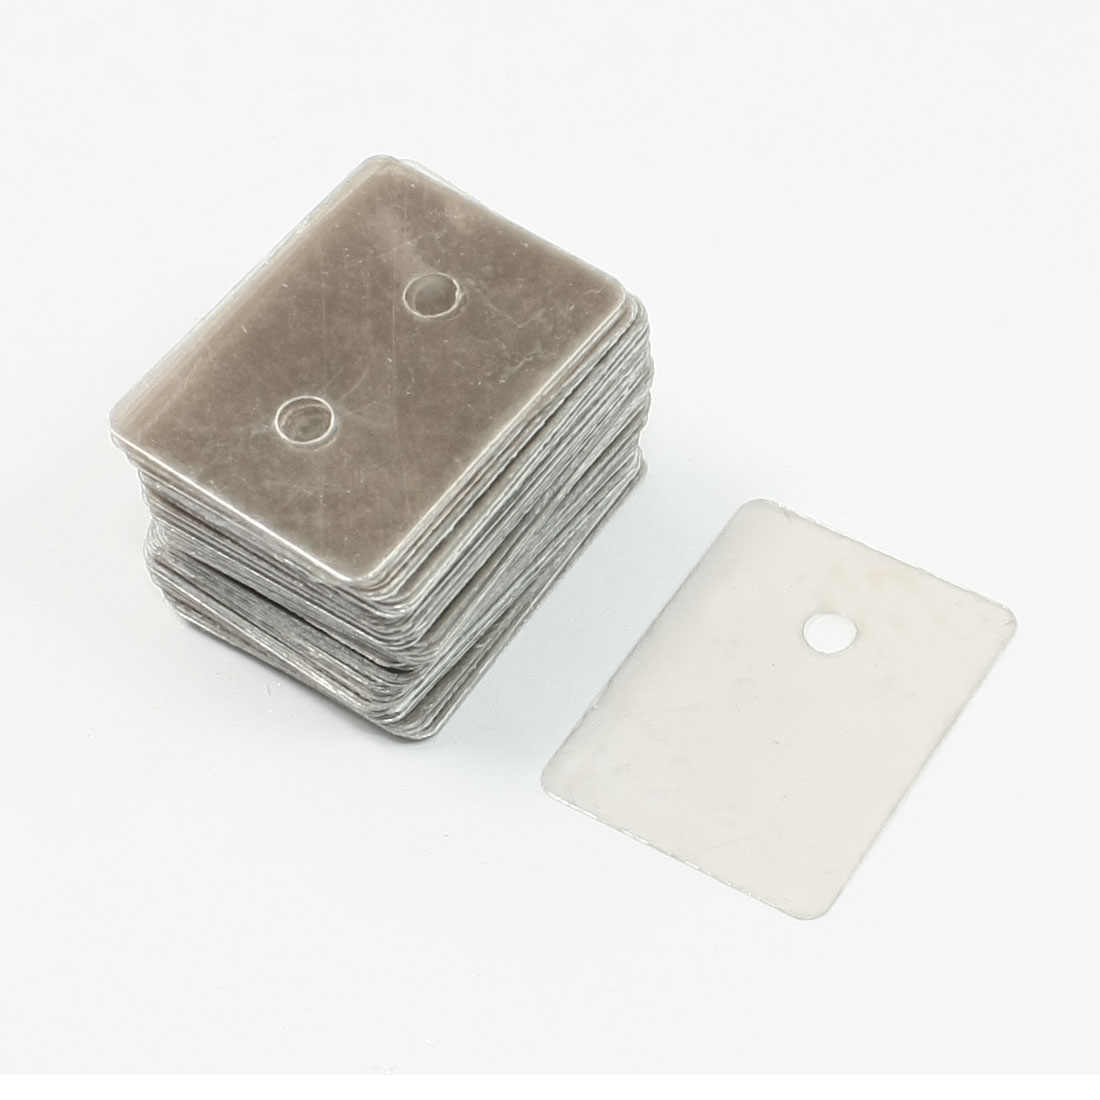 100 Pcs Microwave Oven Repairing Part 29x22mm Mica Plates Sheets